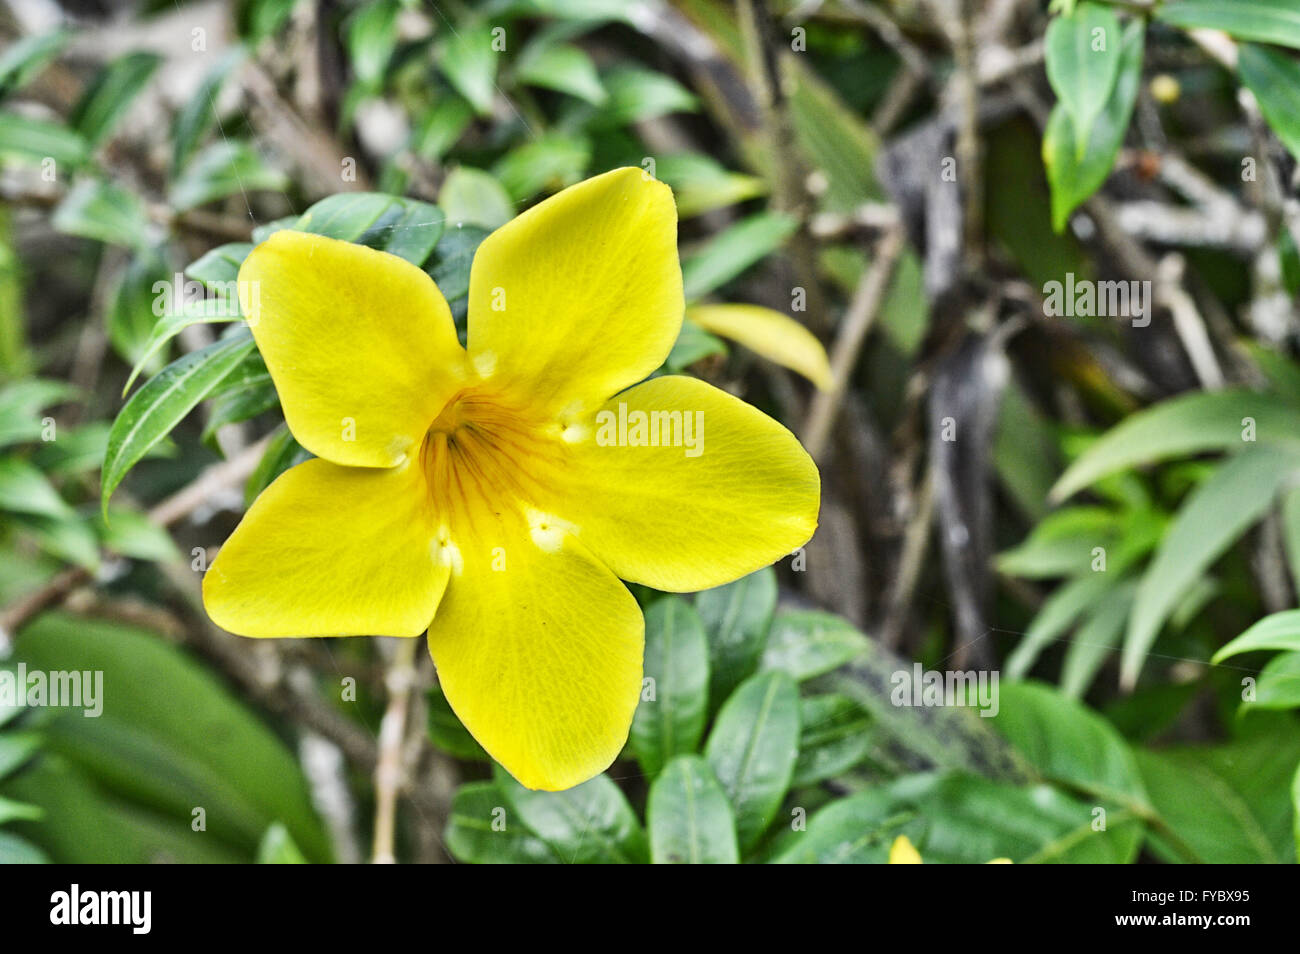 Yellow trumpet flower tree in nature stock photo 102909665 alamy yellow trumpet flower tree in nature mightylinksfo